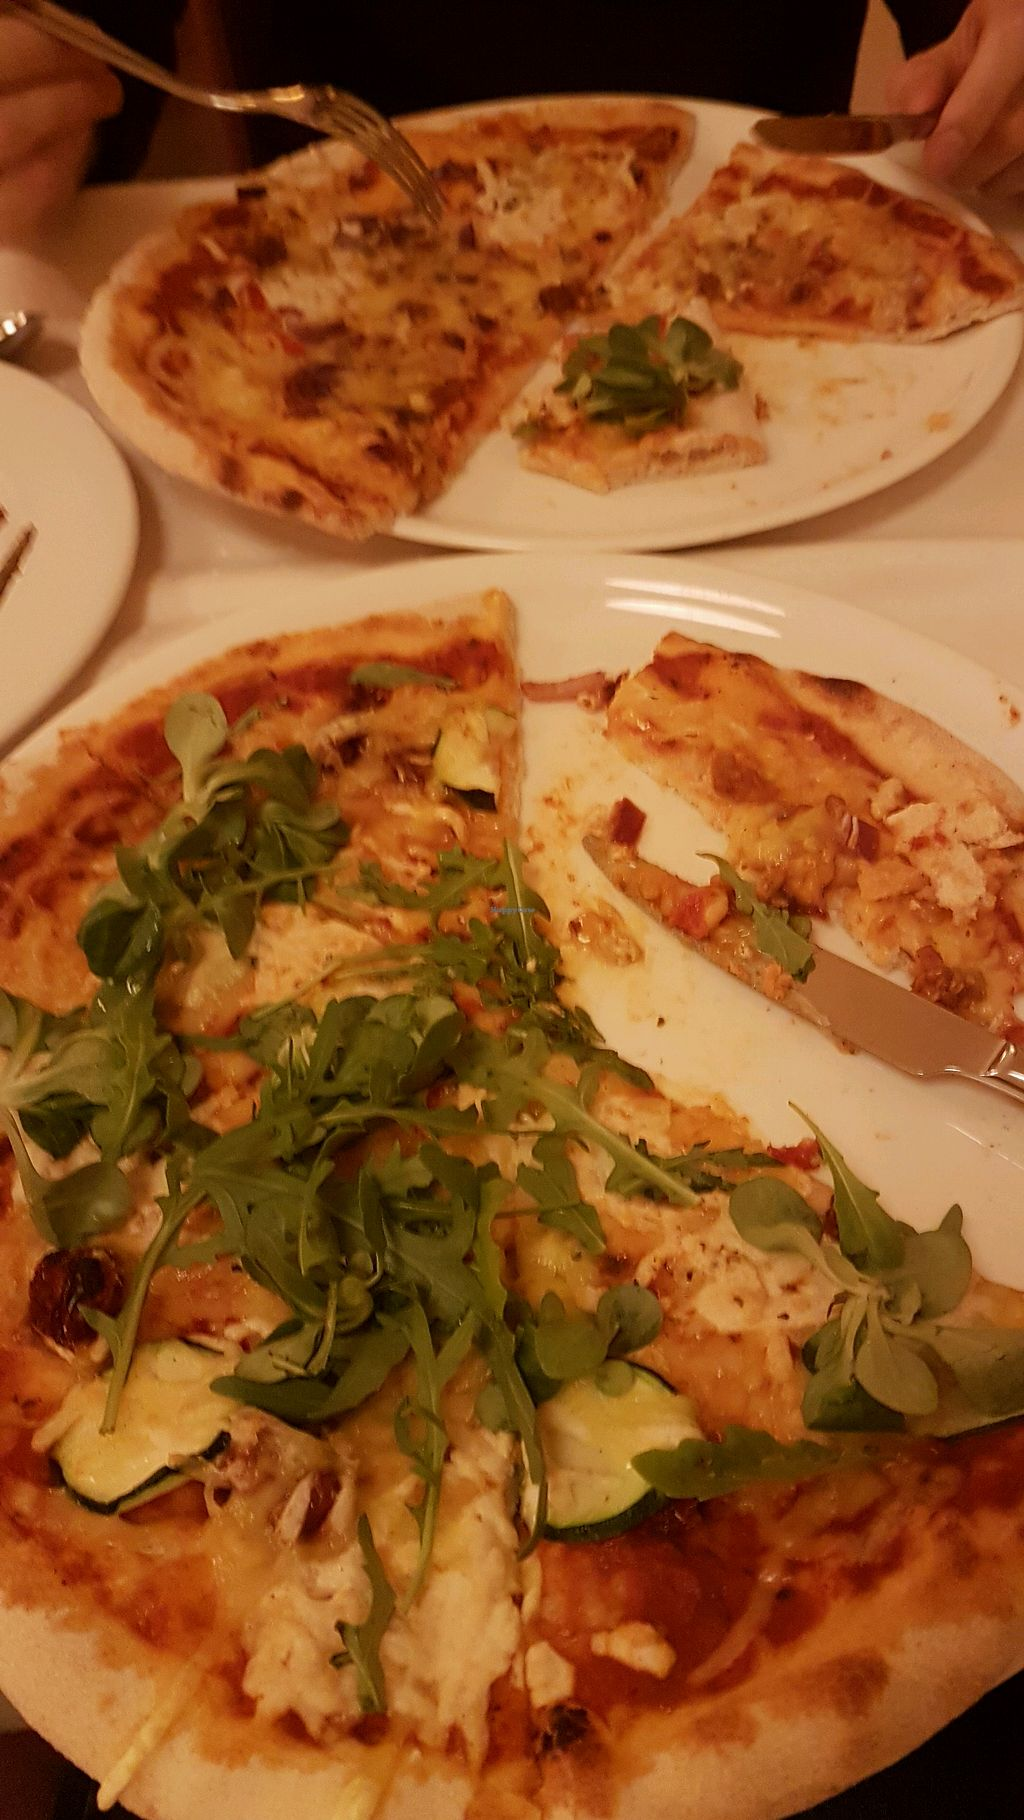 """Photo of Napfenyes Restaurant and Pastry Shop  by <a href=""""/members/profile/LauraBanana"""">LauraBanana</a> <br/>Mediterranean and Hungarian pizzas!!! <br/> April 28, 2018  - <a href='/contact/abuse/image/18107/392057'>Report</a>"""